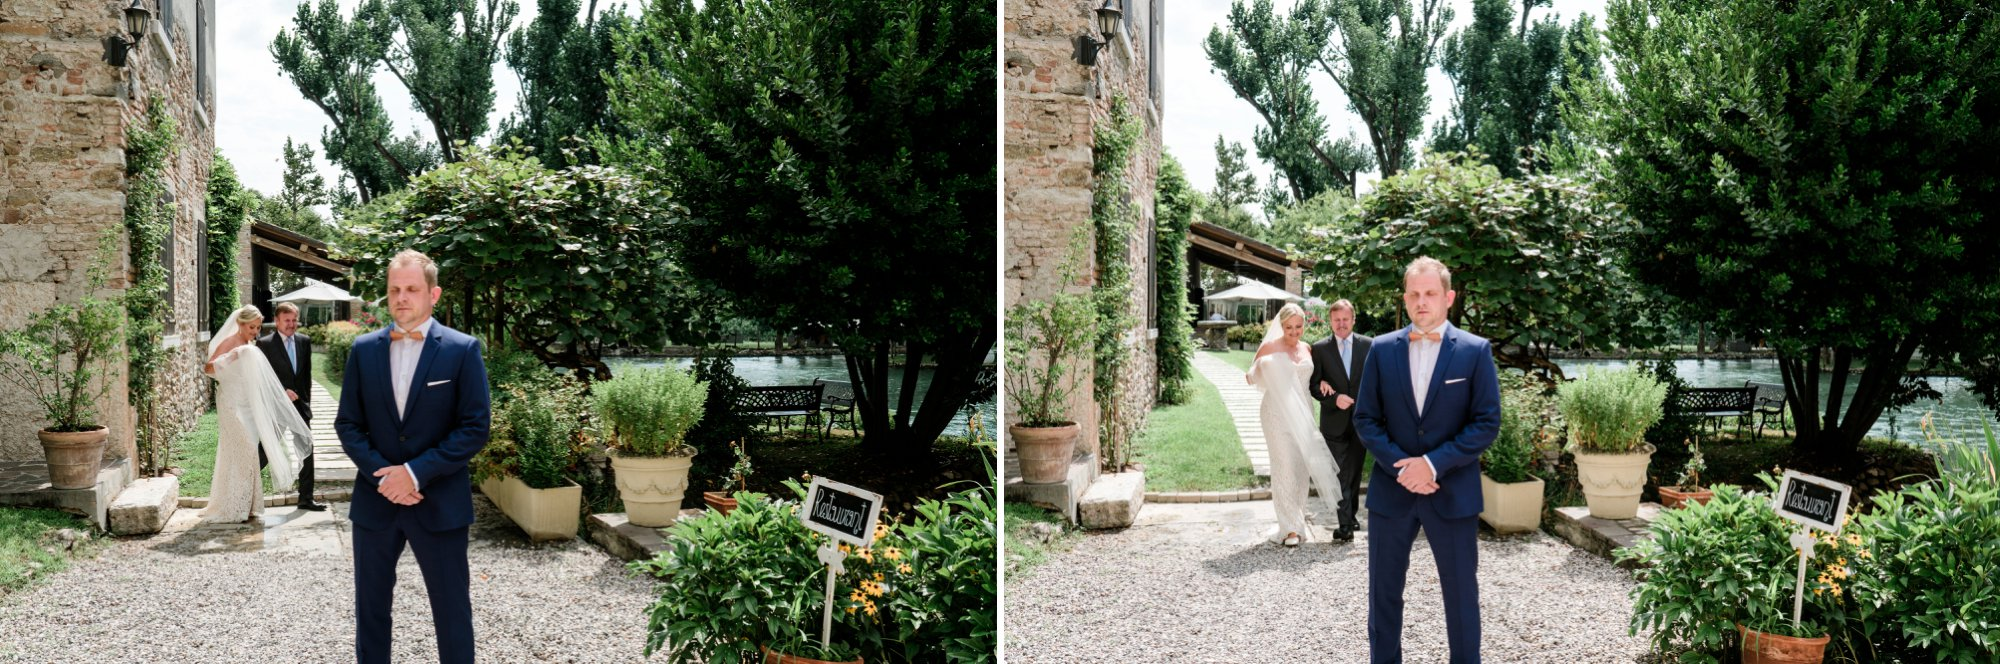 destination-wedding-in-torri-del-benaco